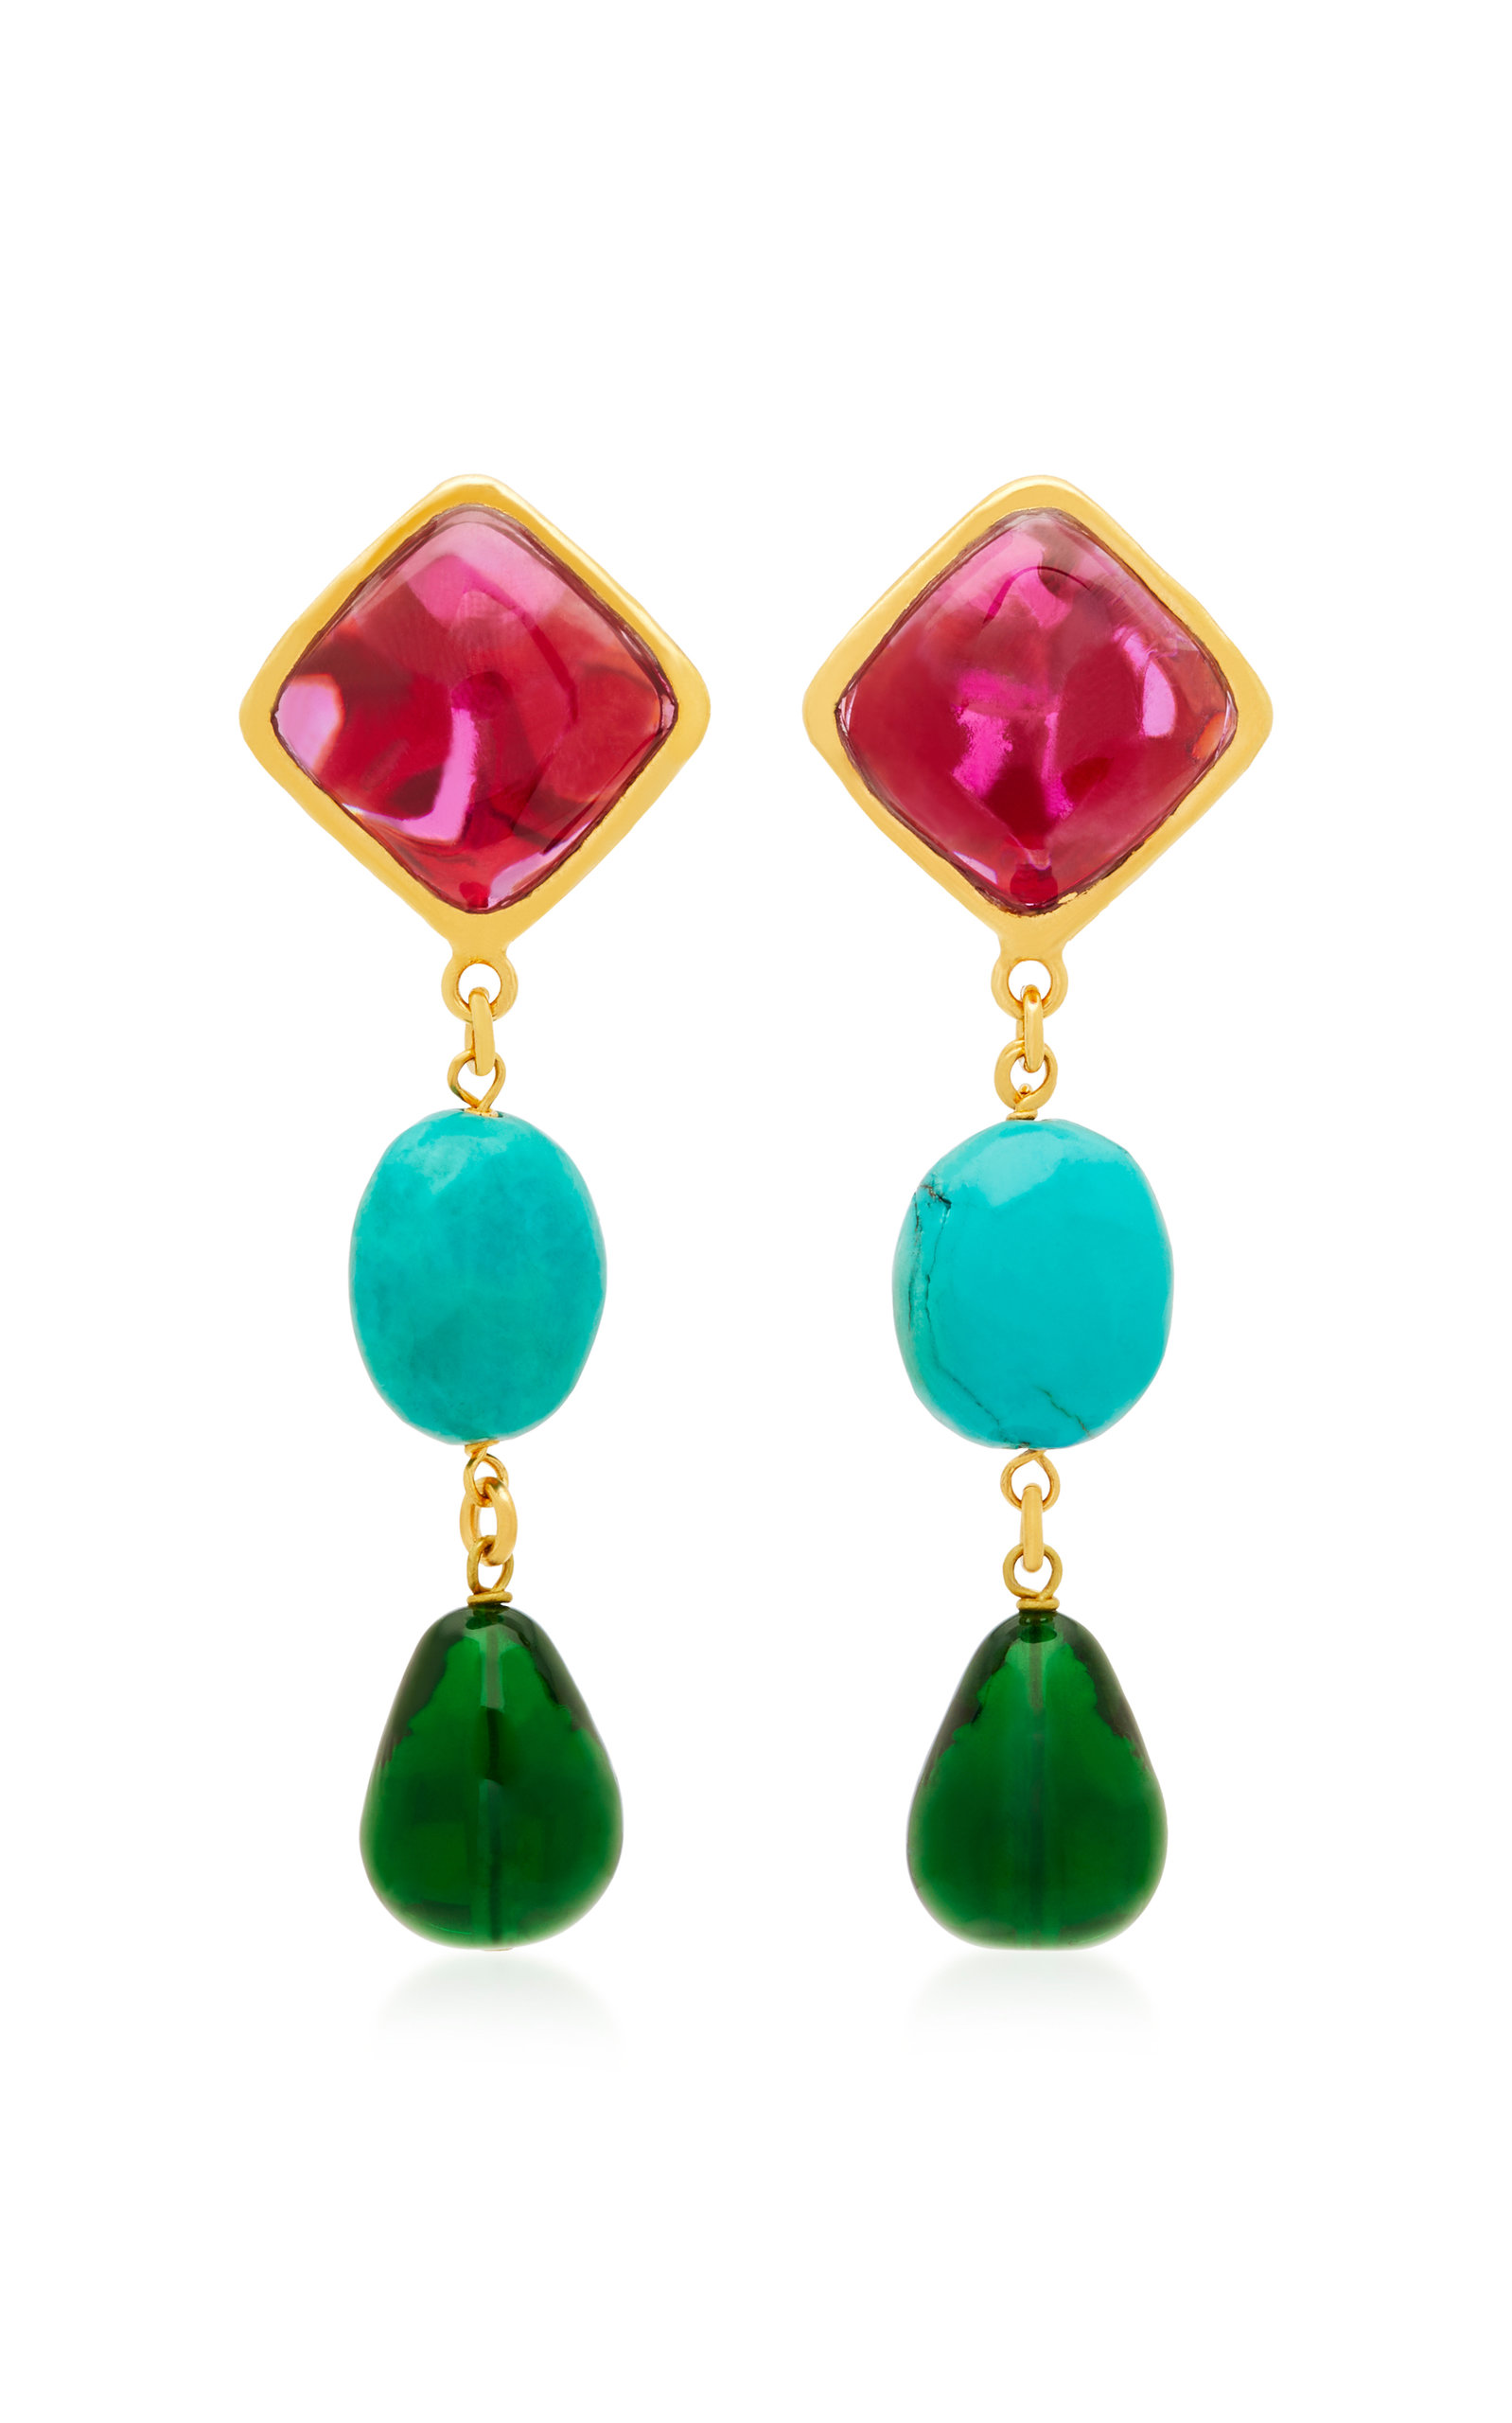 LOULOU DE LA FALAISE 24K GOLD-PLATED STONE AND TURQUOISE CLIP EARRINGS